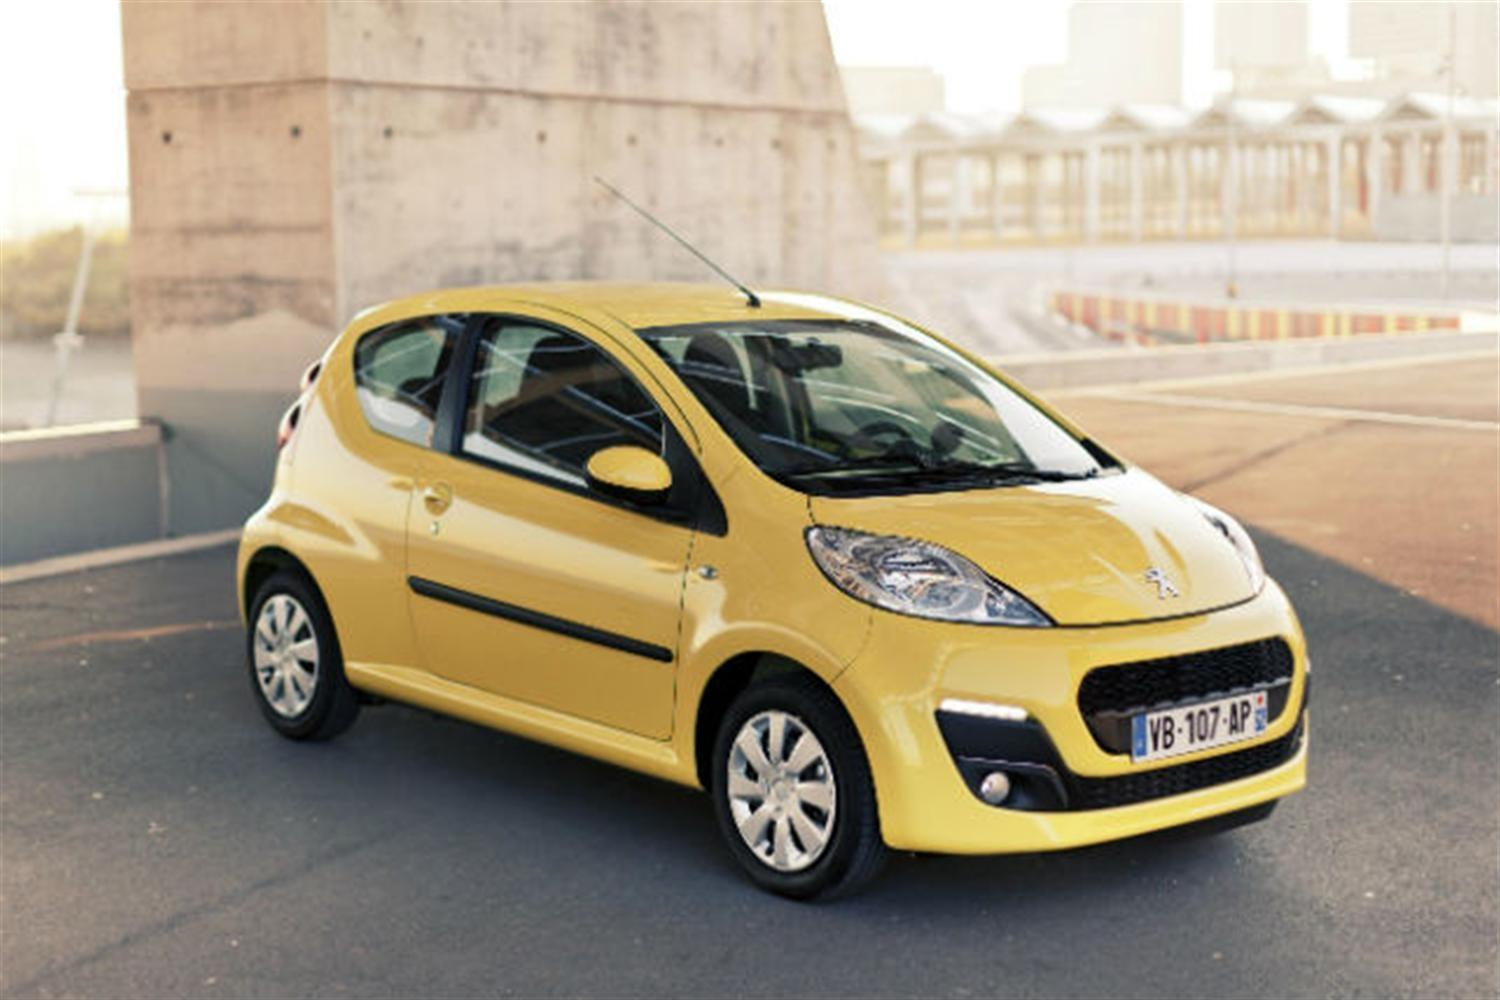 1st Look at the New 2012 Peugeot 107